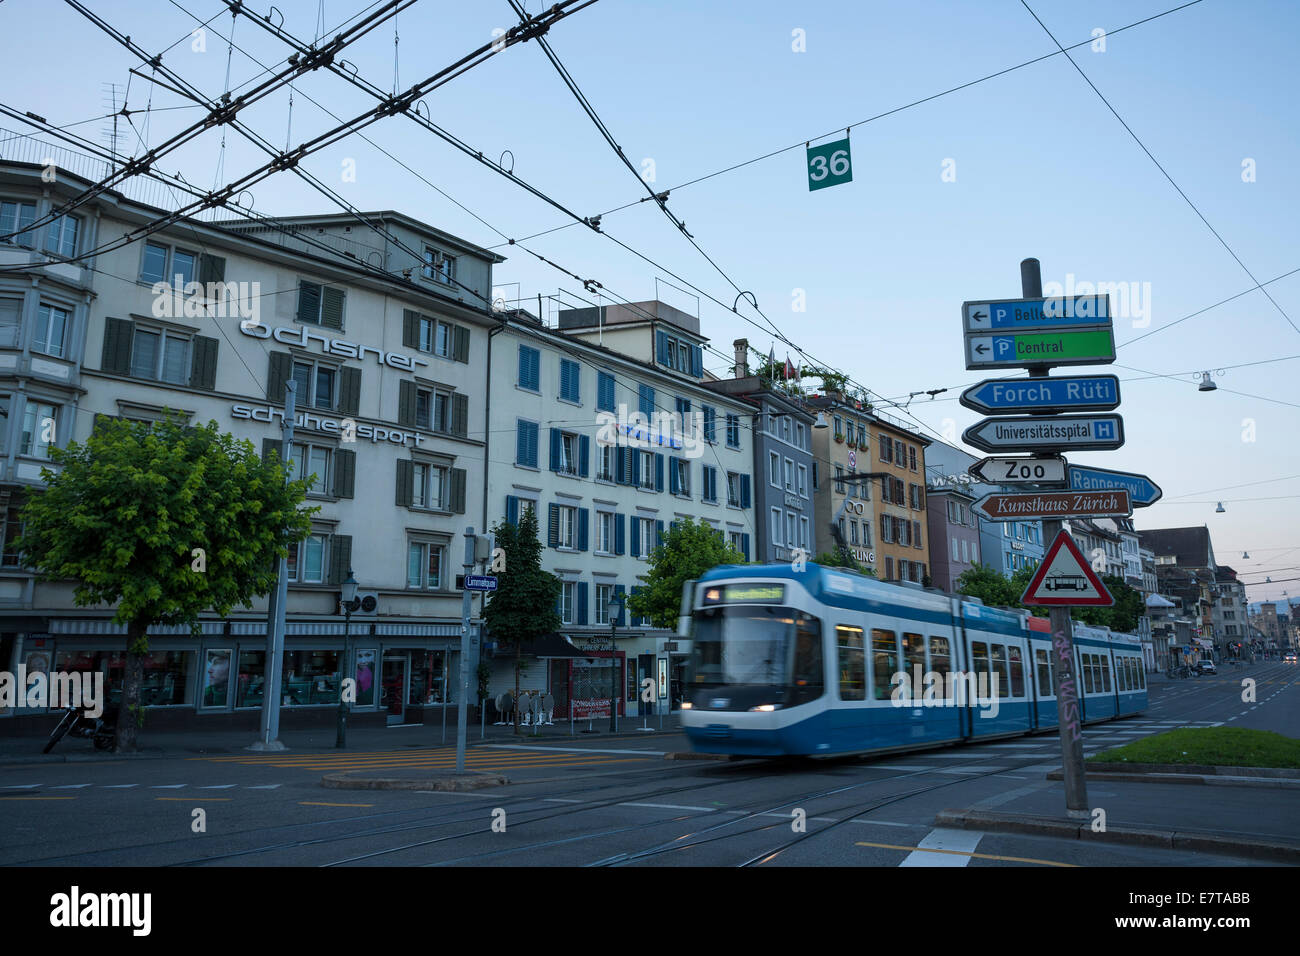 A view down Limmatquai in Zürich at dawn with a moving tram and overhead lines. - Stock Image